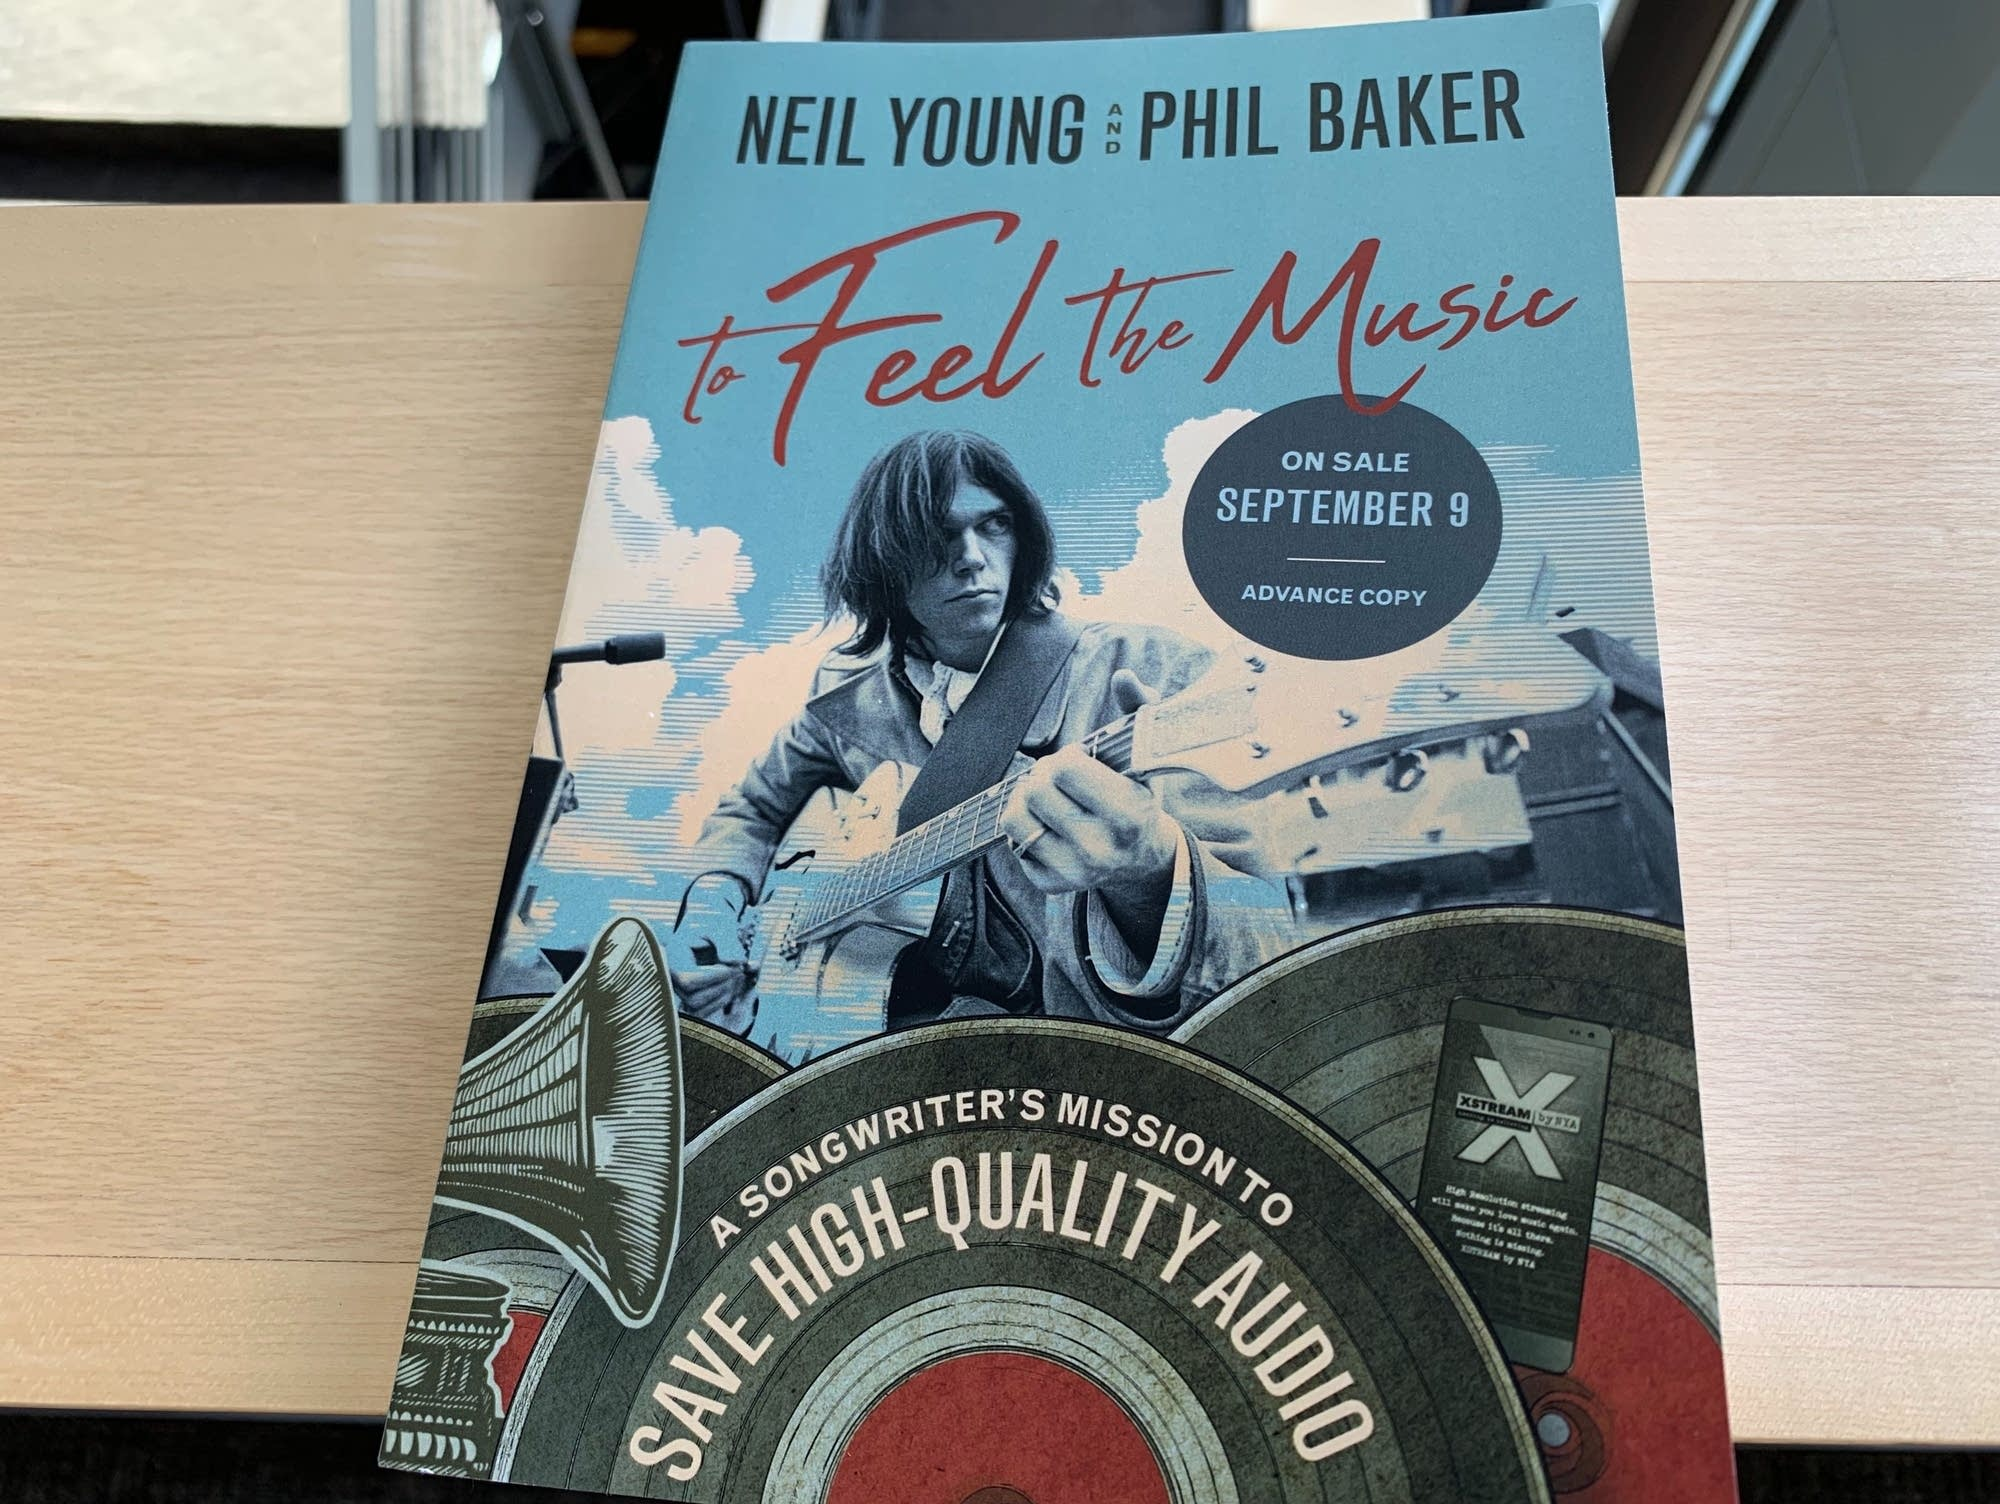 'To Feel the Music,' a book by Neil Young and Phil Baker.